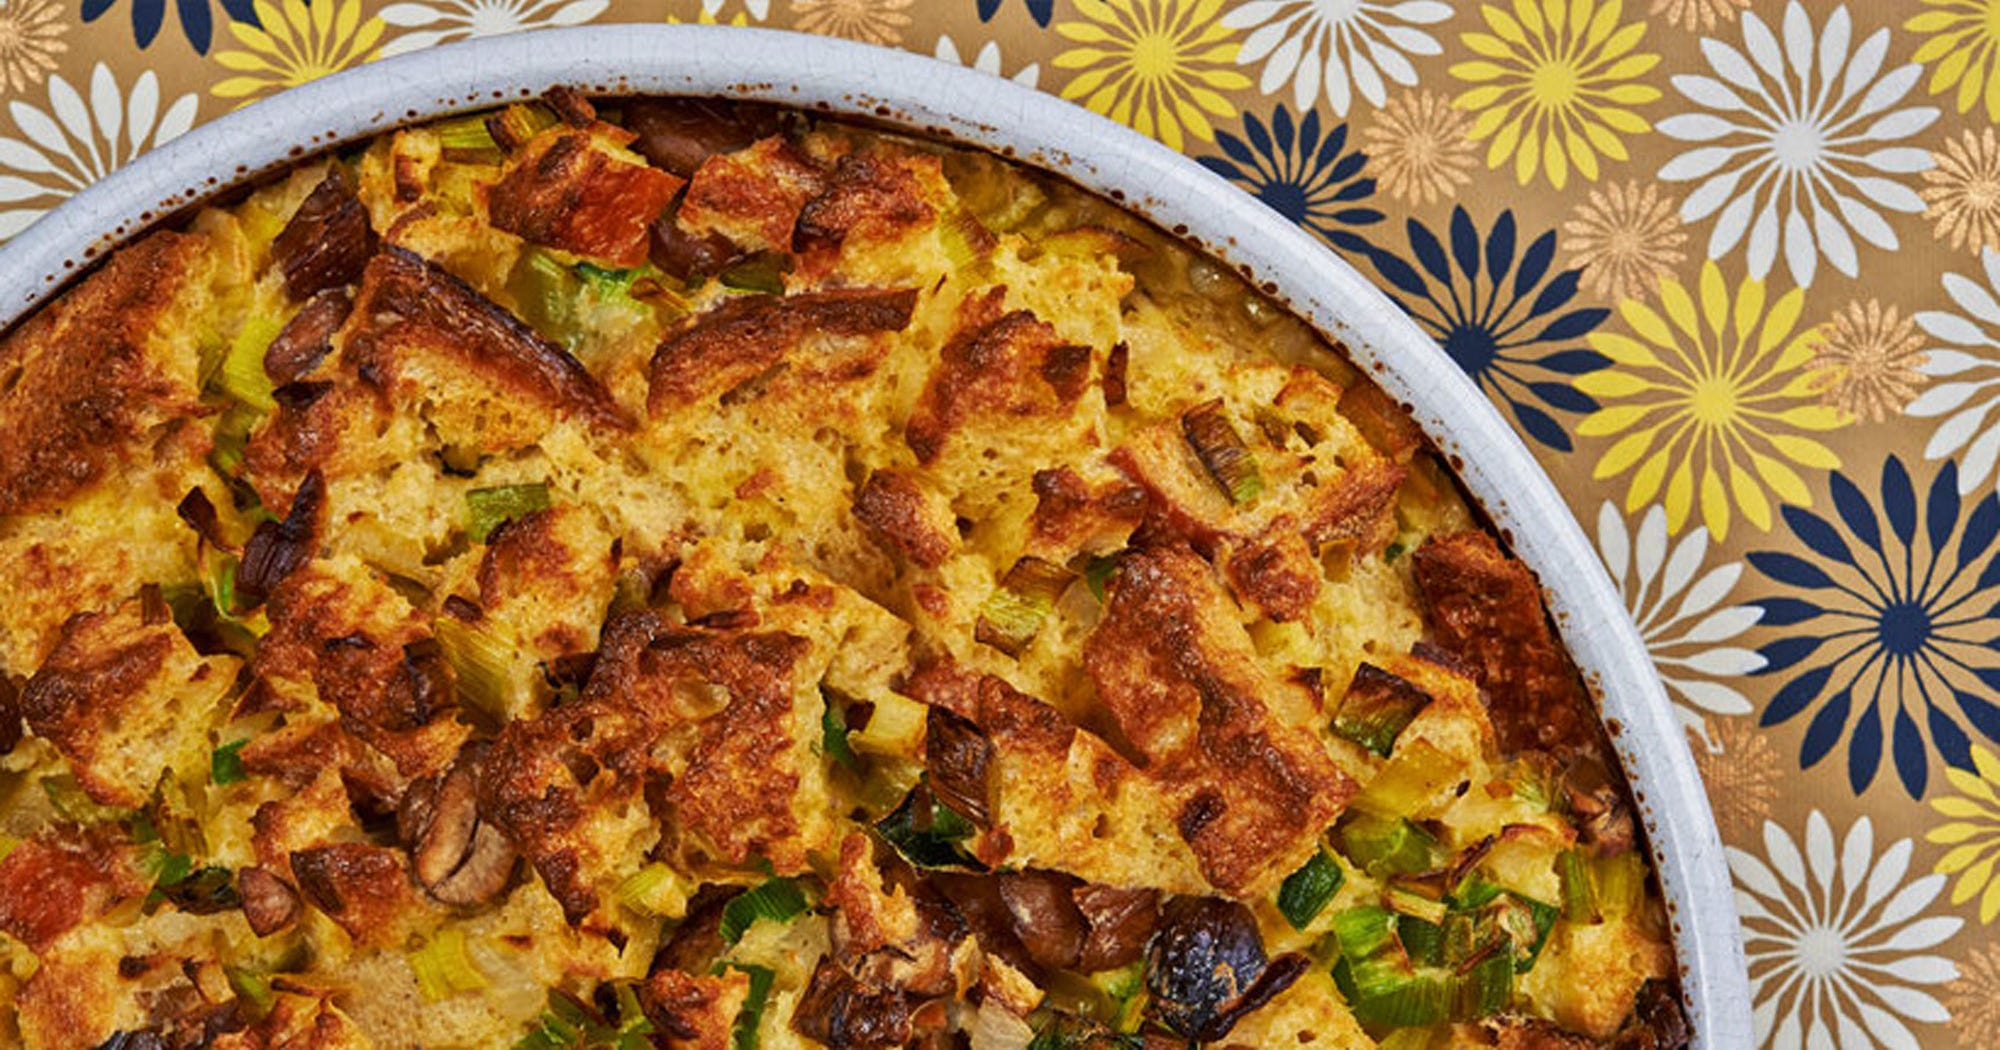 Next-Level Stuffing Recipes For All Your Holiday Meals